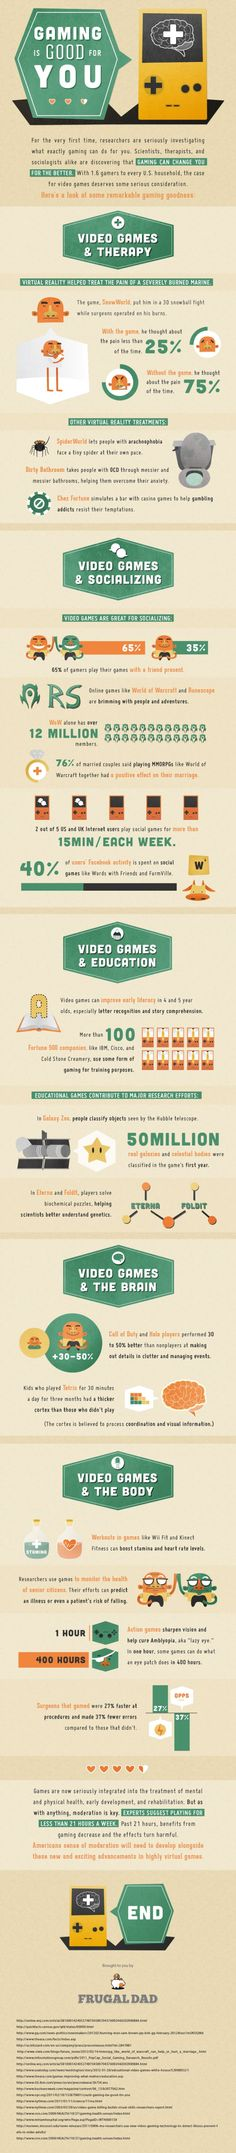 gamification is good for you